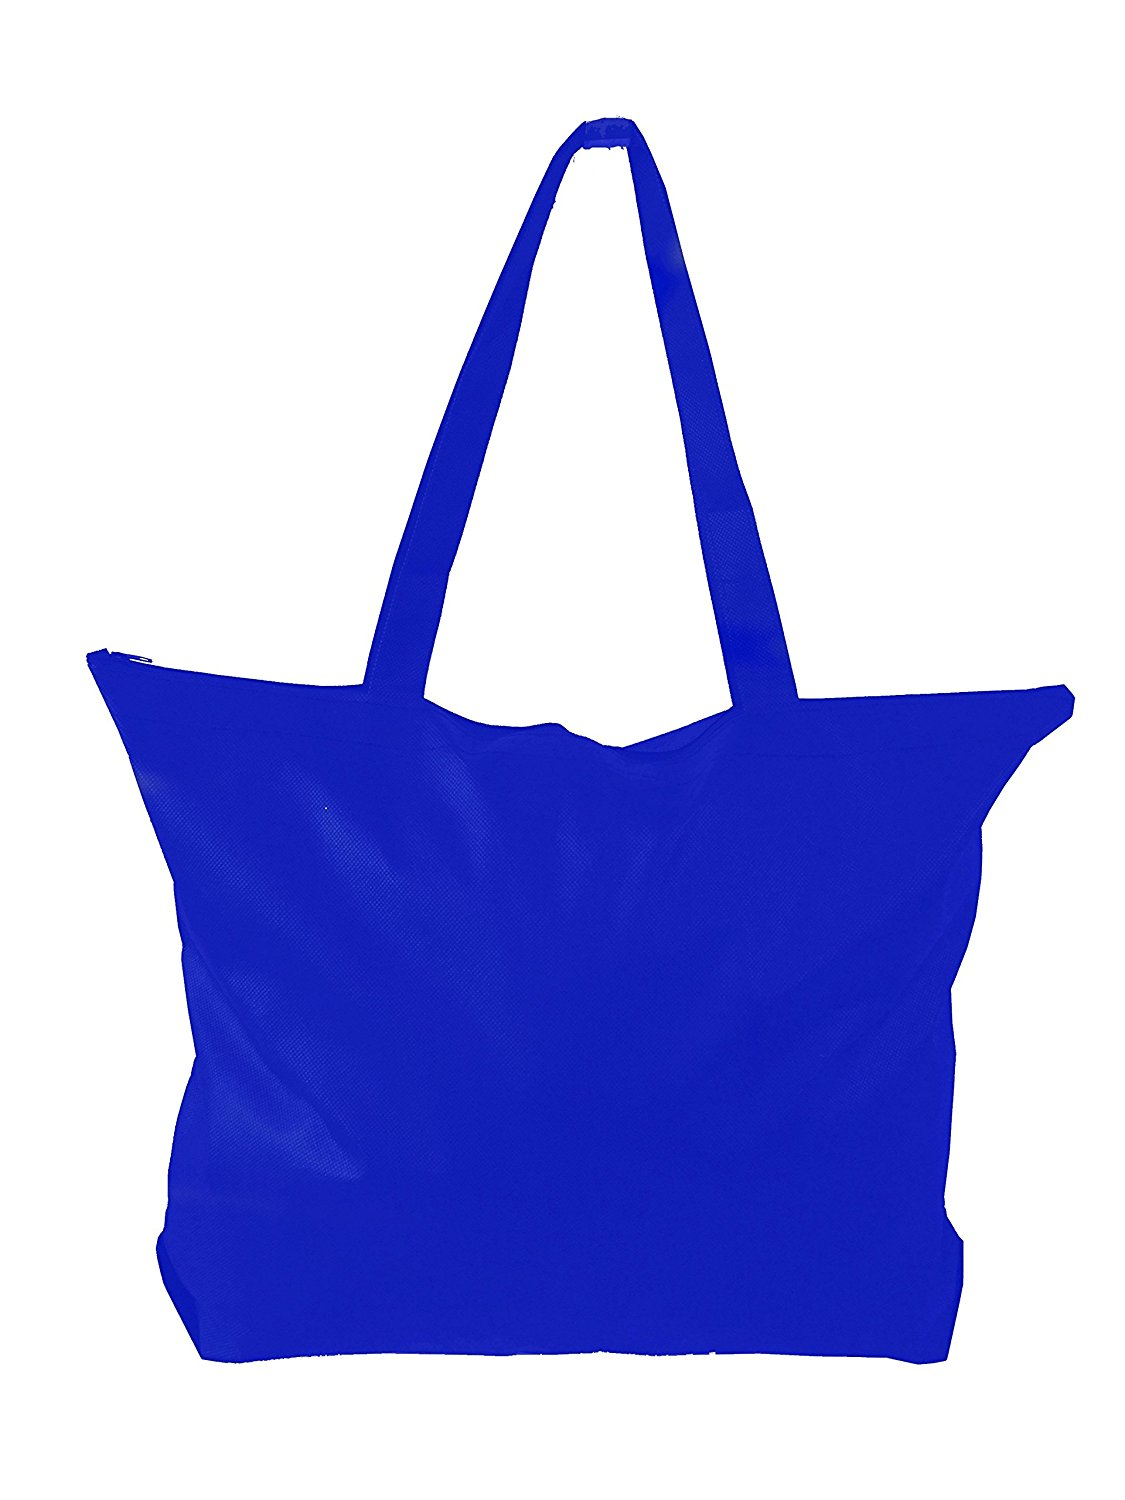 Zipper Tote Bag W Gusset Non Woven Large For Conference Trade Shows Ping 50 Red